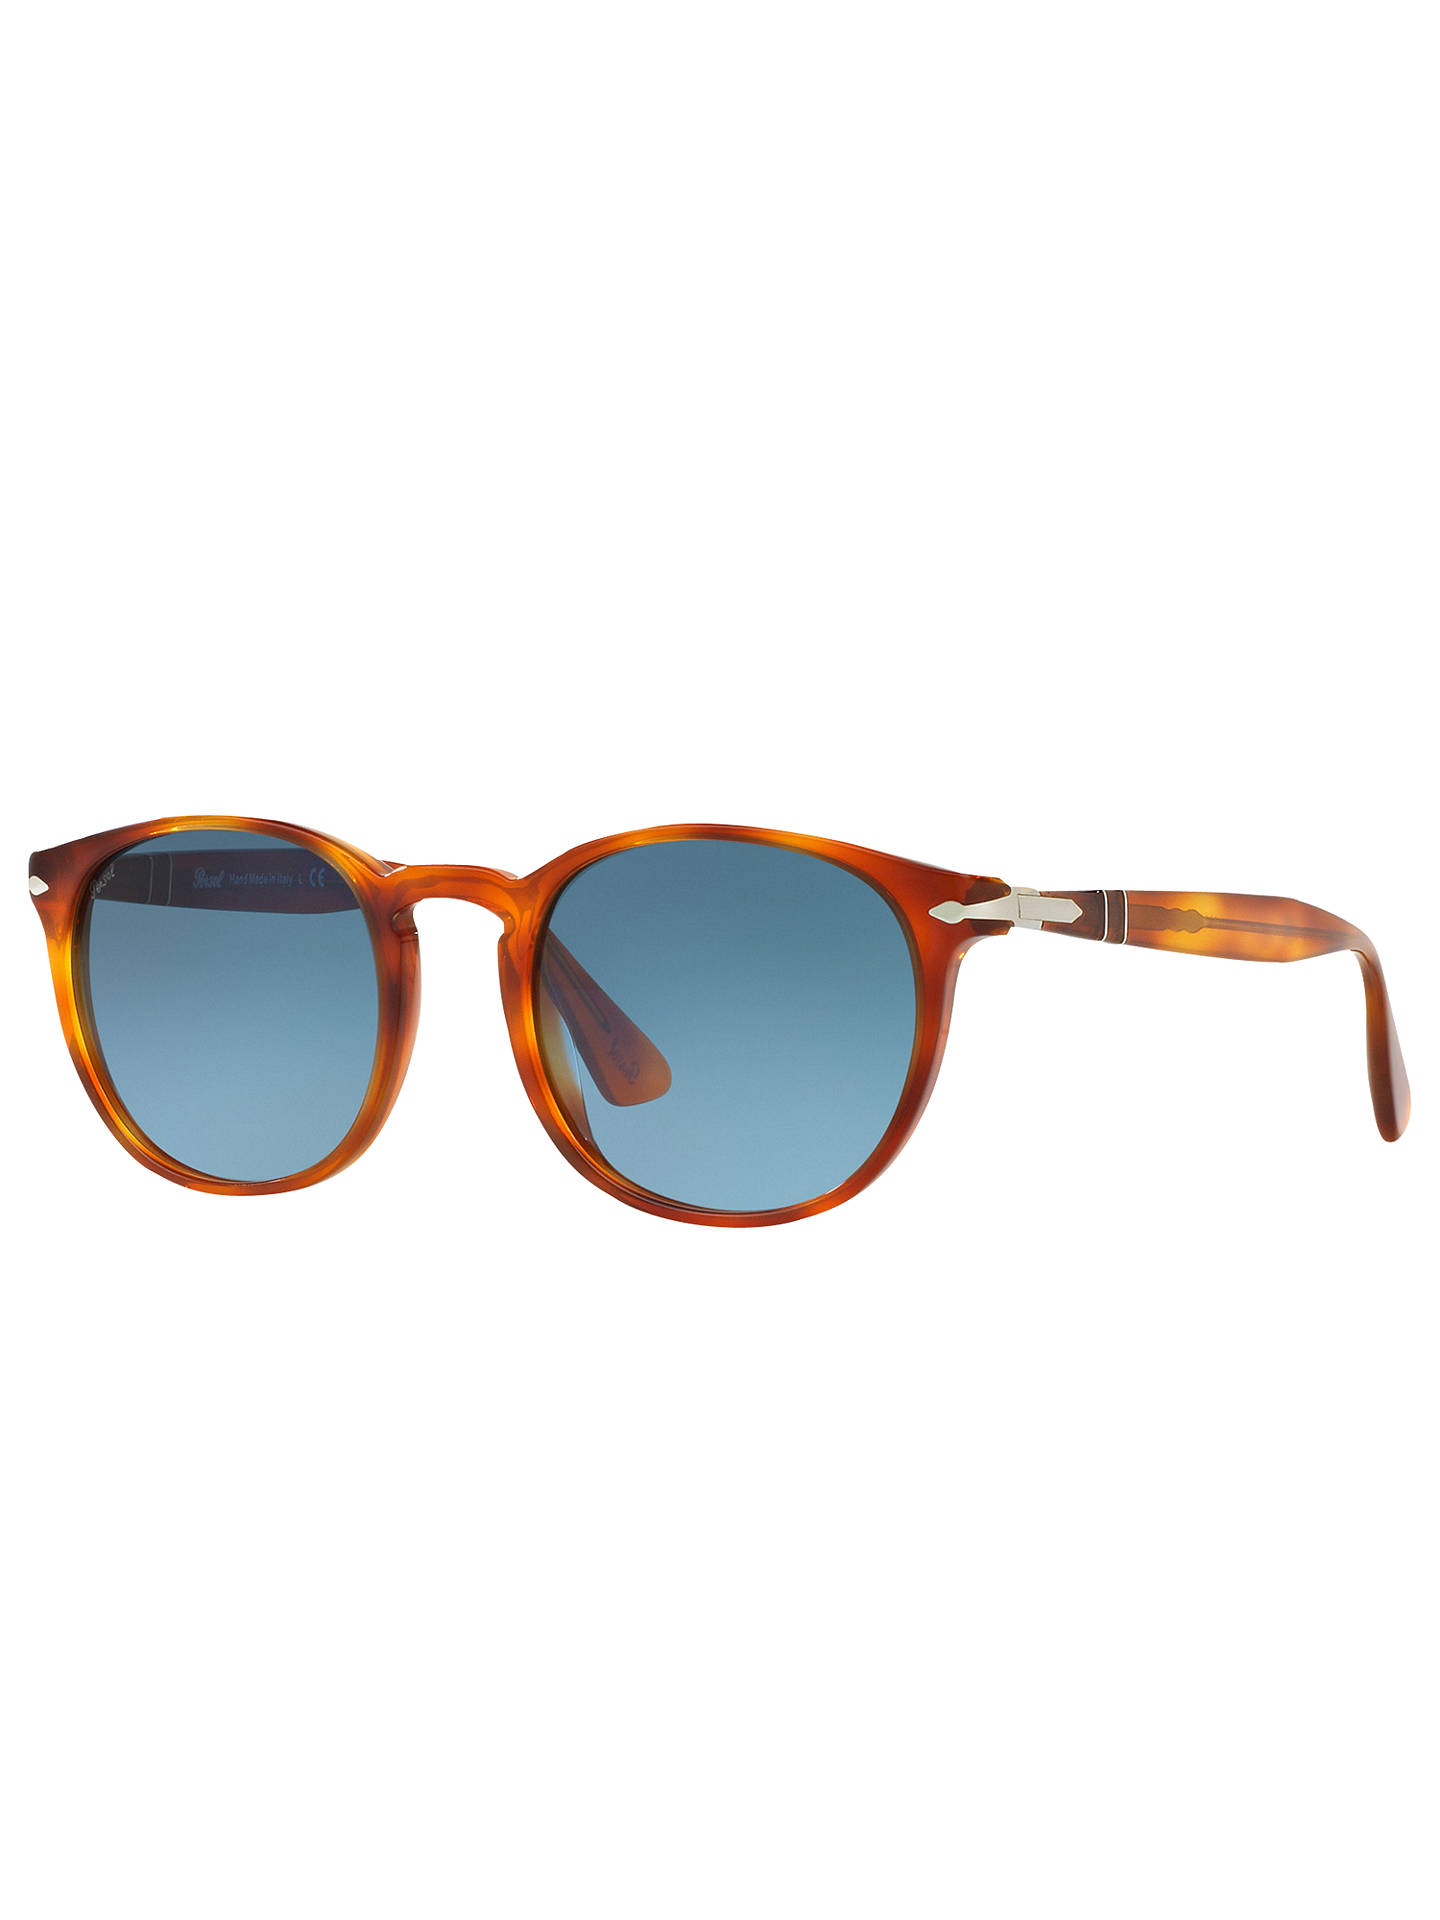 41f1fadd97d2 Buy Persol PO3157S Terra di Siena Oval Sunglasses, Tortoise/Blue Gradient  Online at johnlewis ...